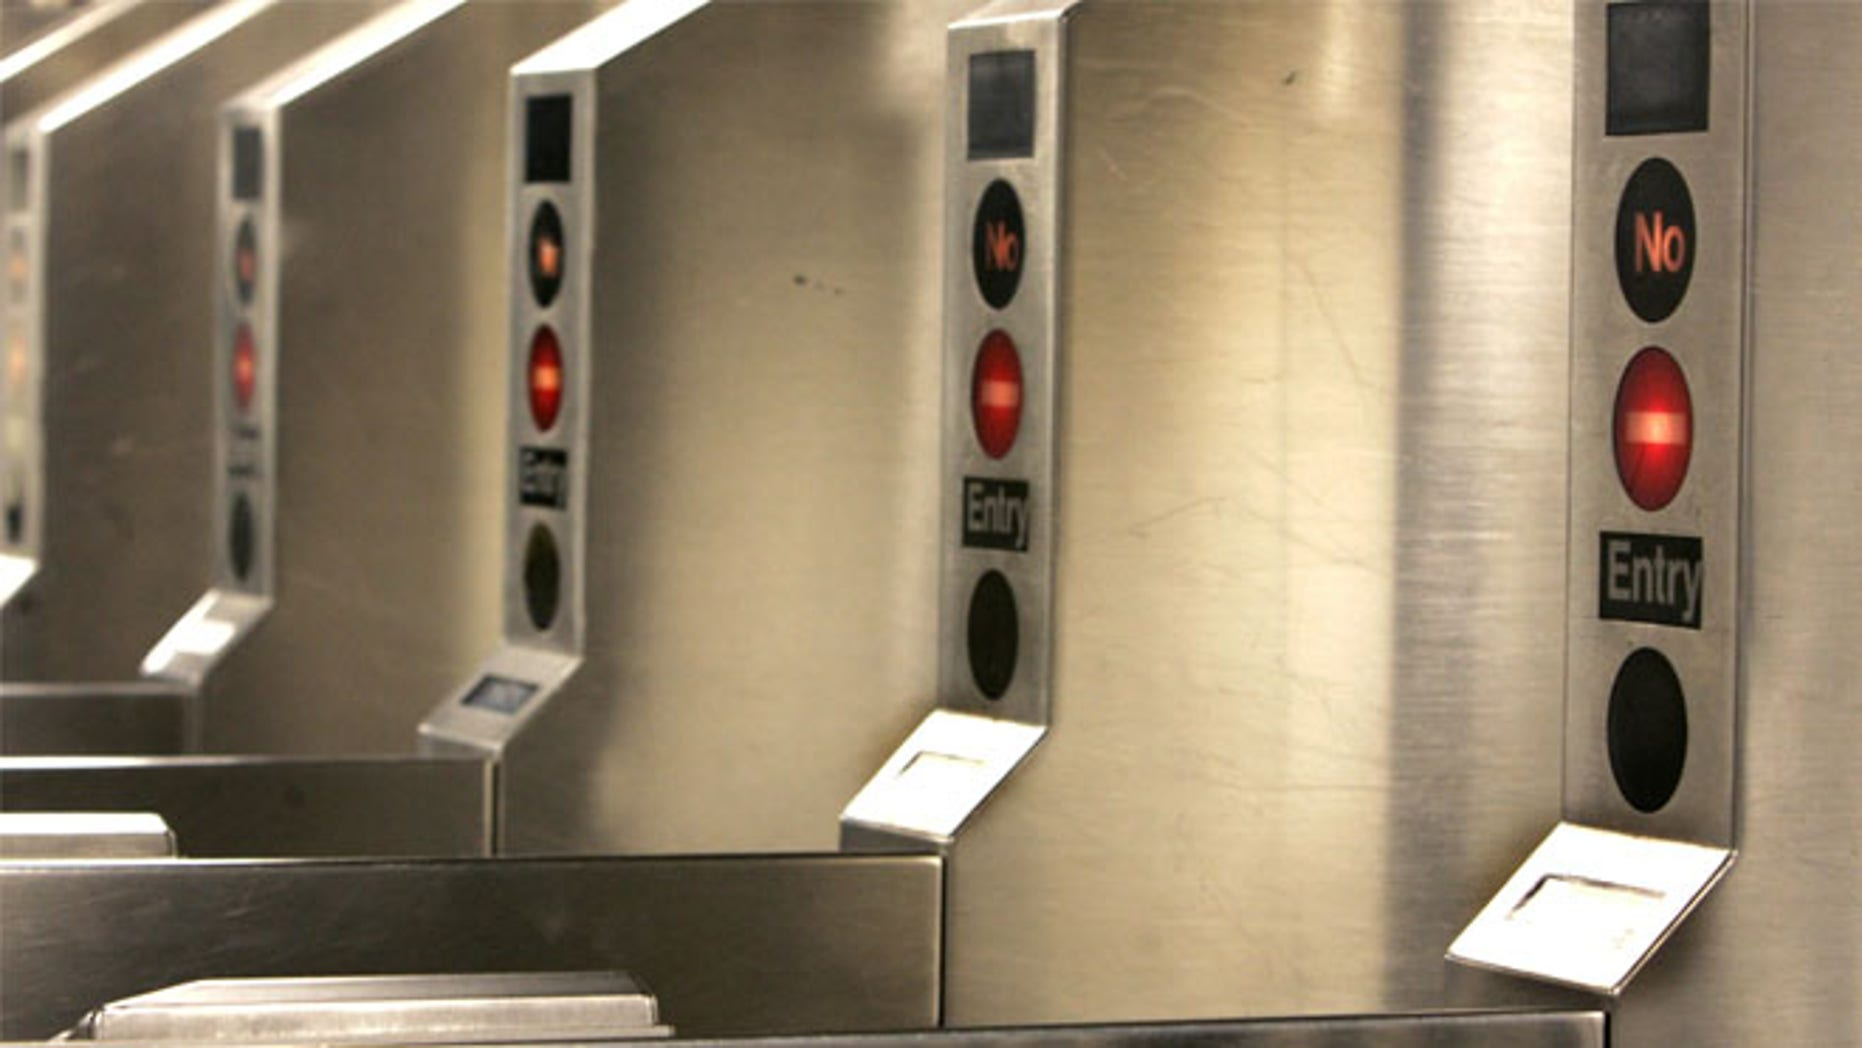 FILE: A top NYPD official said jumping a turnstile will not get an illegal immigrant deported in New York.